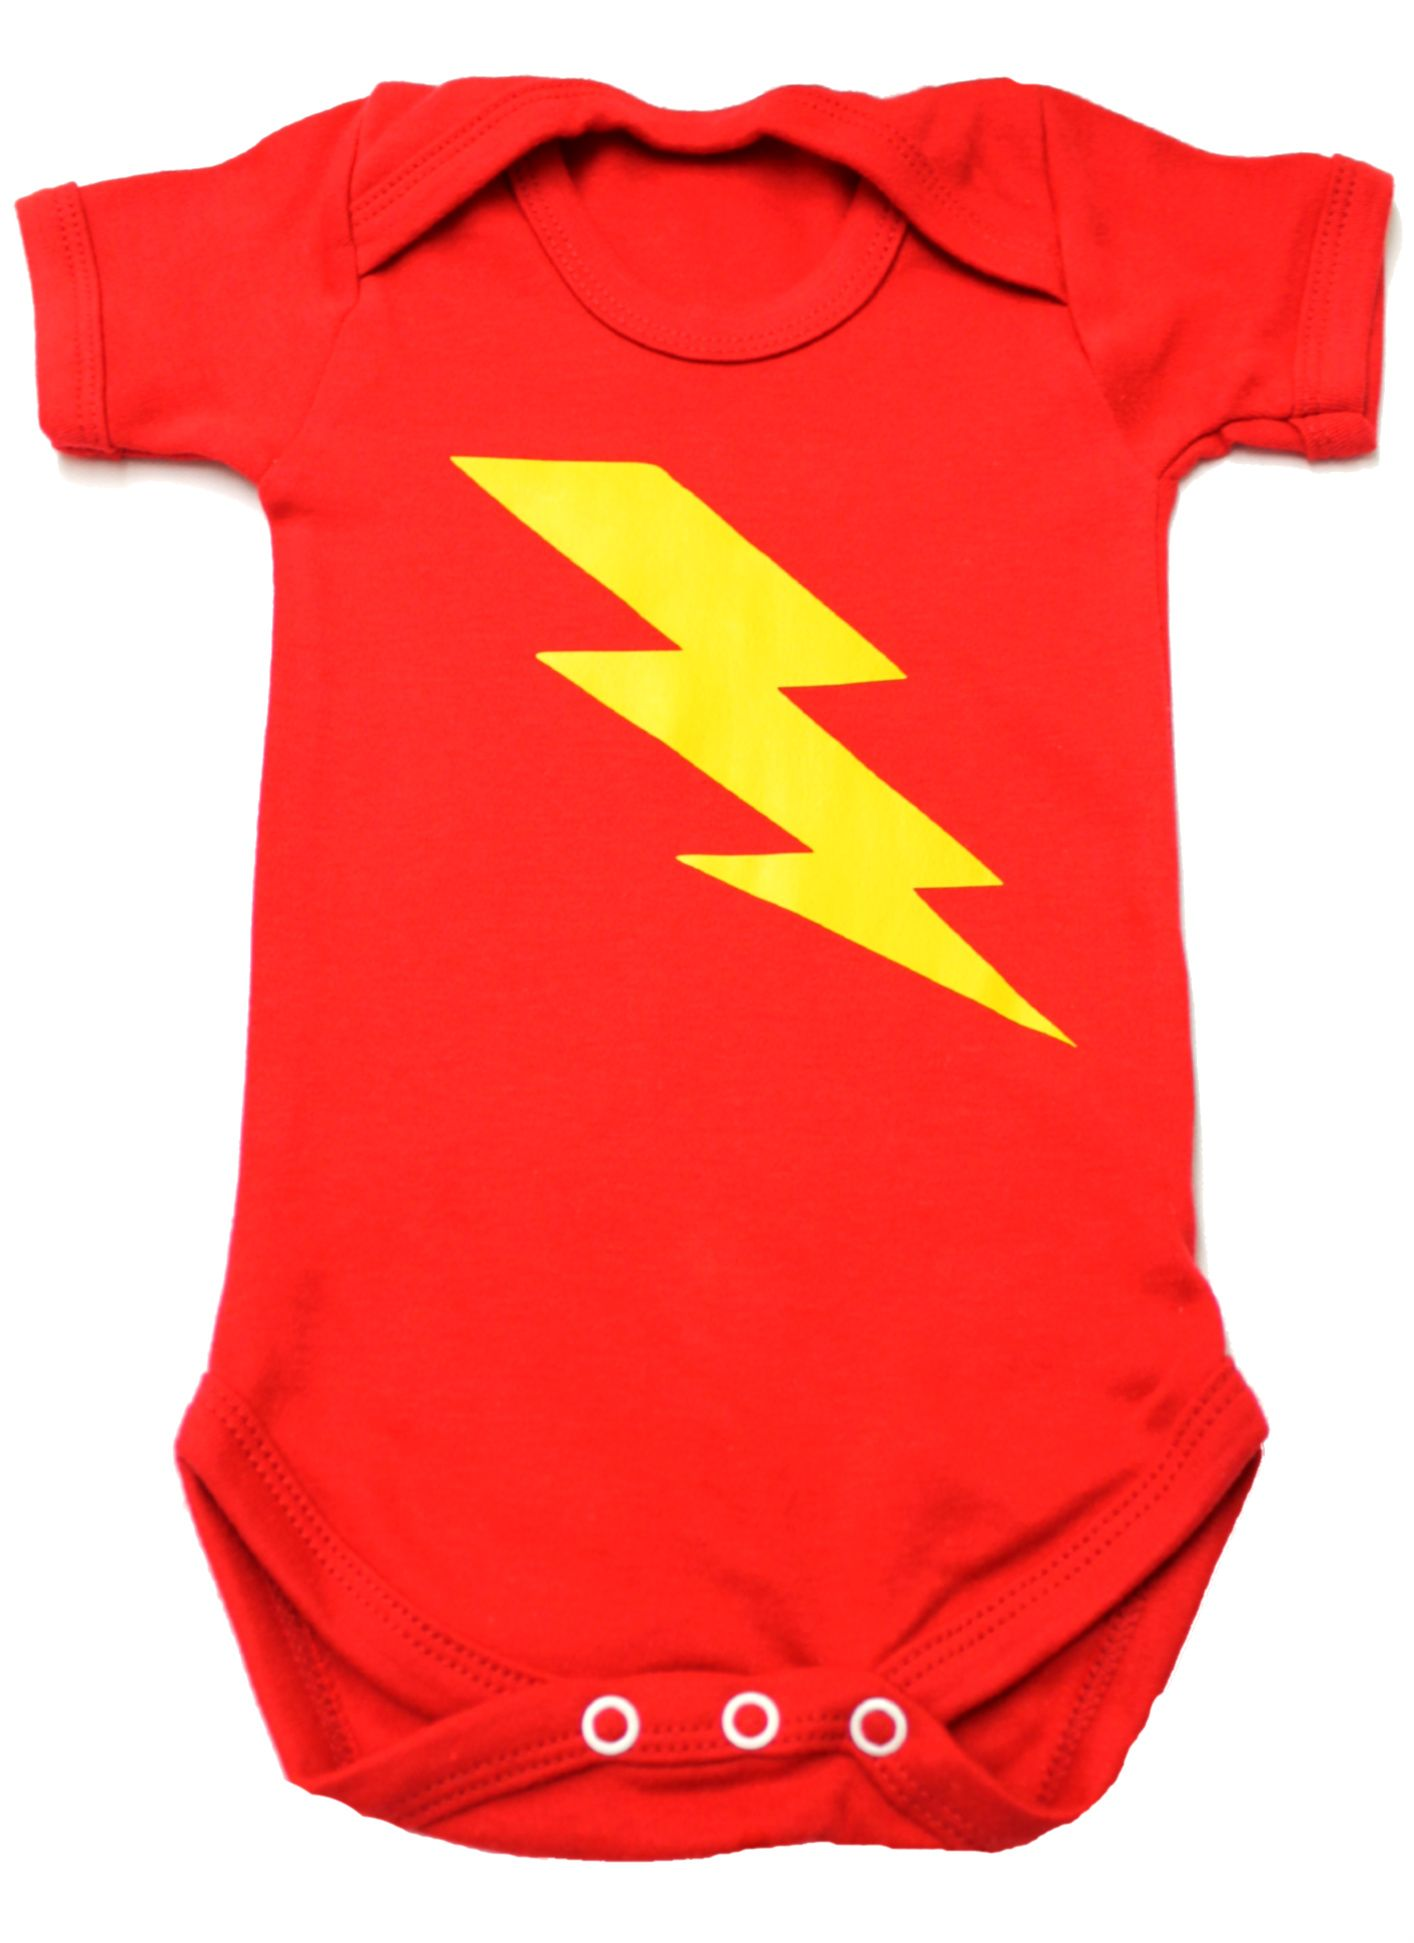 8055695532630 Cool-Baby-Clothes-Cool-Baby-Vest-Baby-Grow-Lightning-Bolt-Awesome-Funky-Baby -Vest